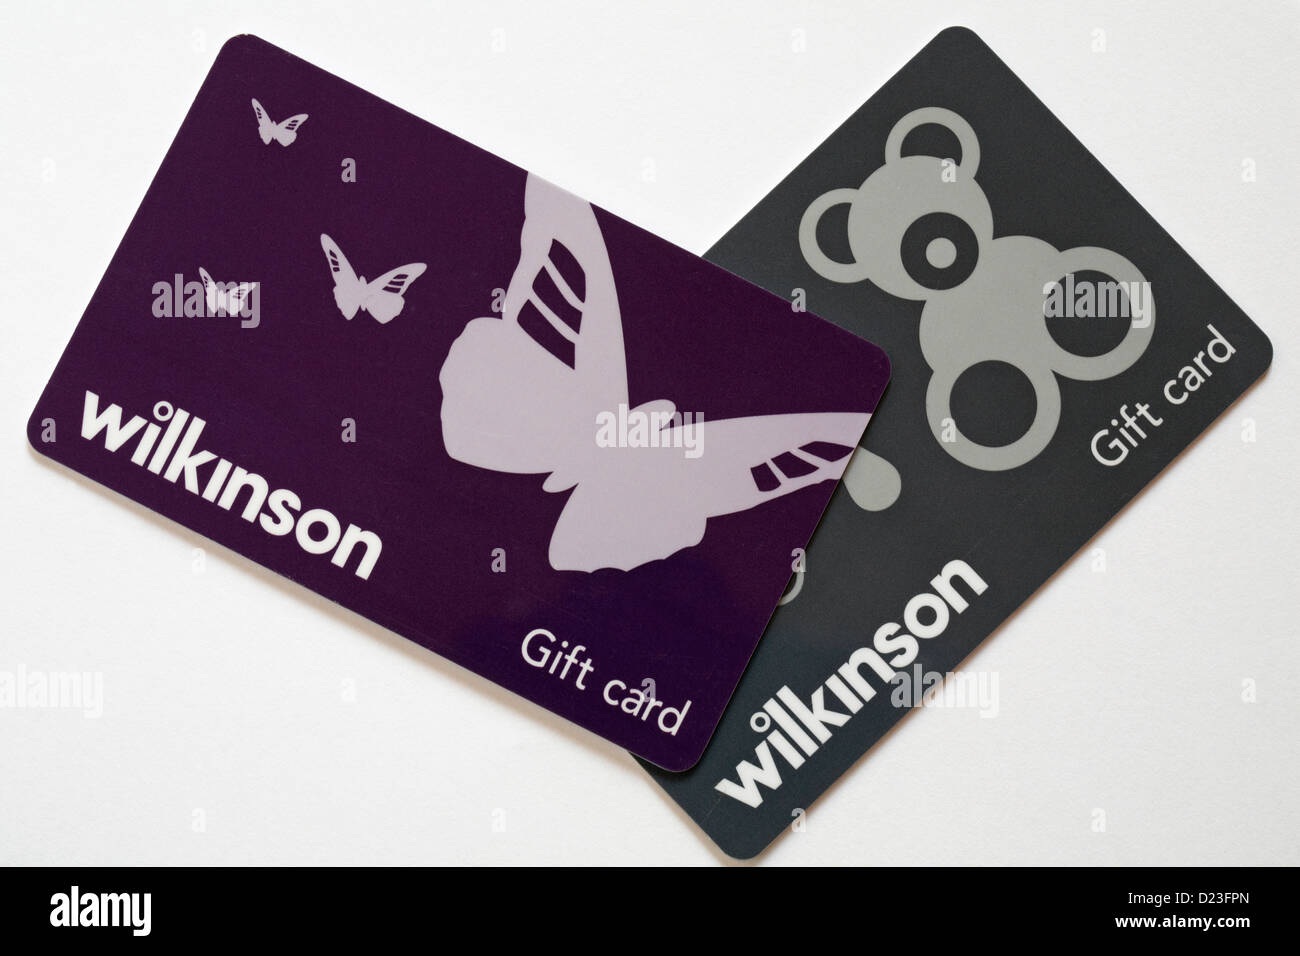 Gift cards stock photos gift cards stock images alamy two wilkinson gift cards giftcards set on white background giftcard gift card stock image negle Choice Image